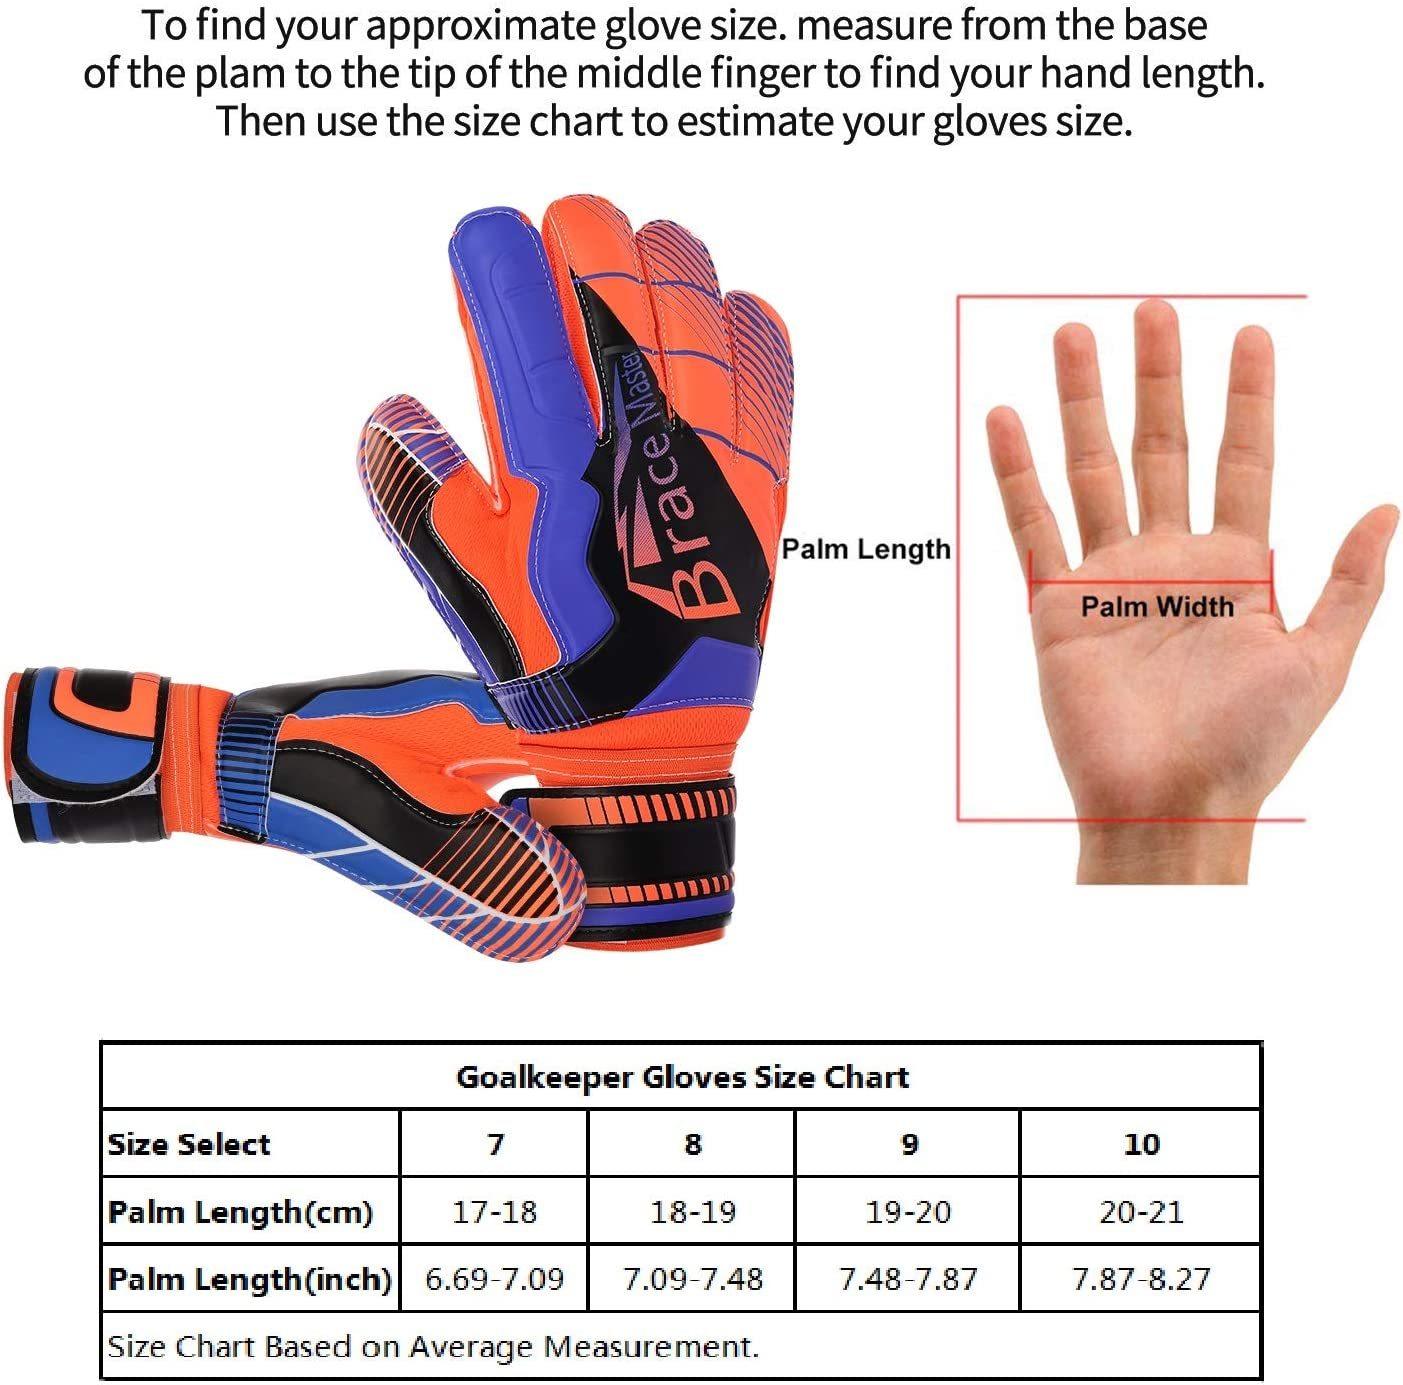 Brace Master Goalie Gloves for Youth & Adult, Goalkeeper Gloves Kids with Finger Support, Soccer Gloves for Men and Women, Junior Keeper Football Gloves for Training and Match : Sports & Outdoors